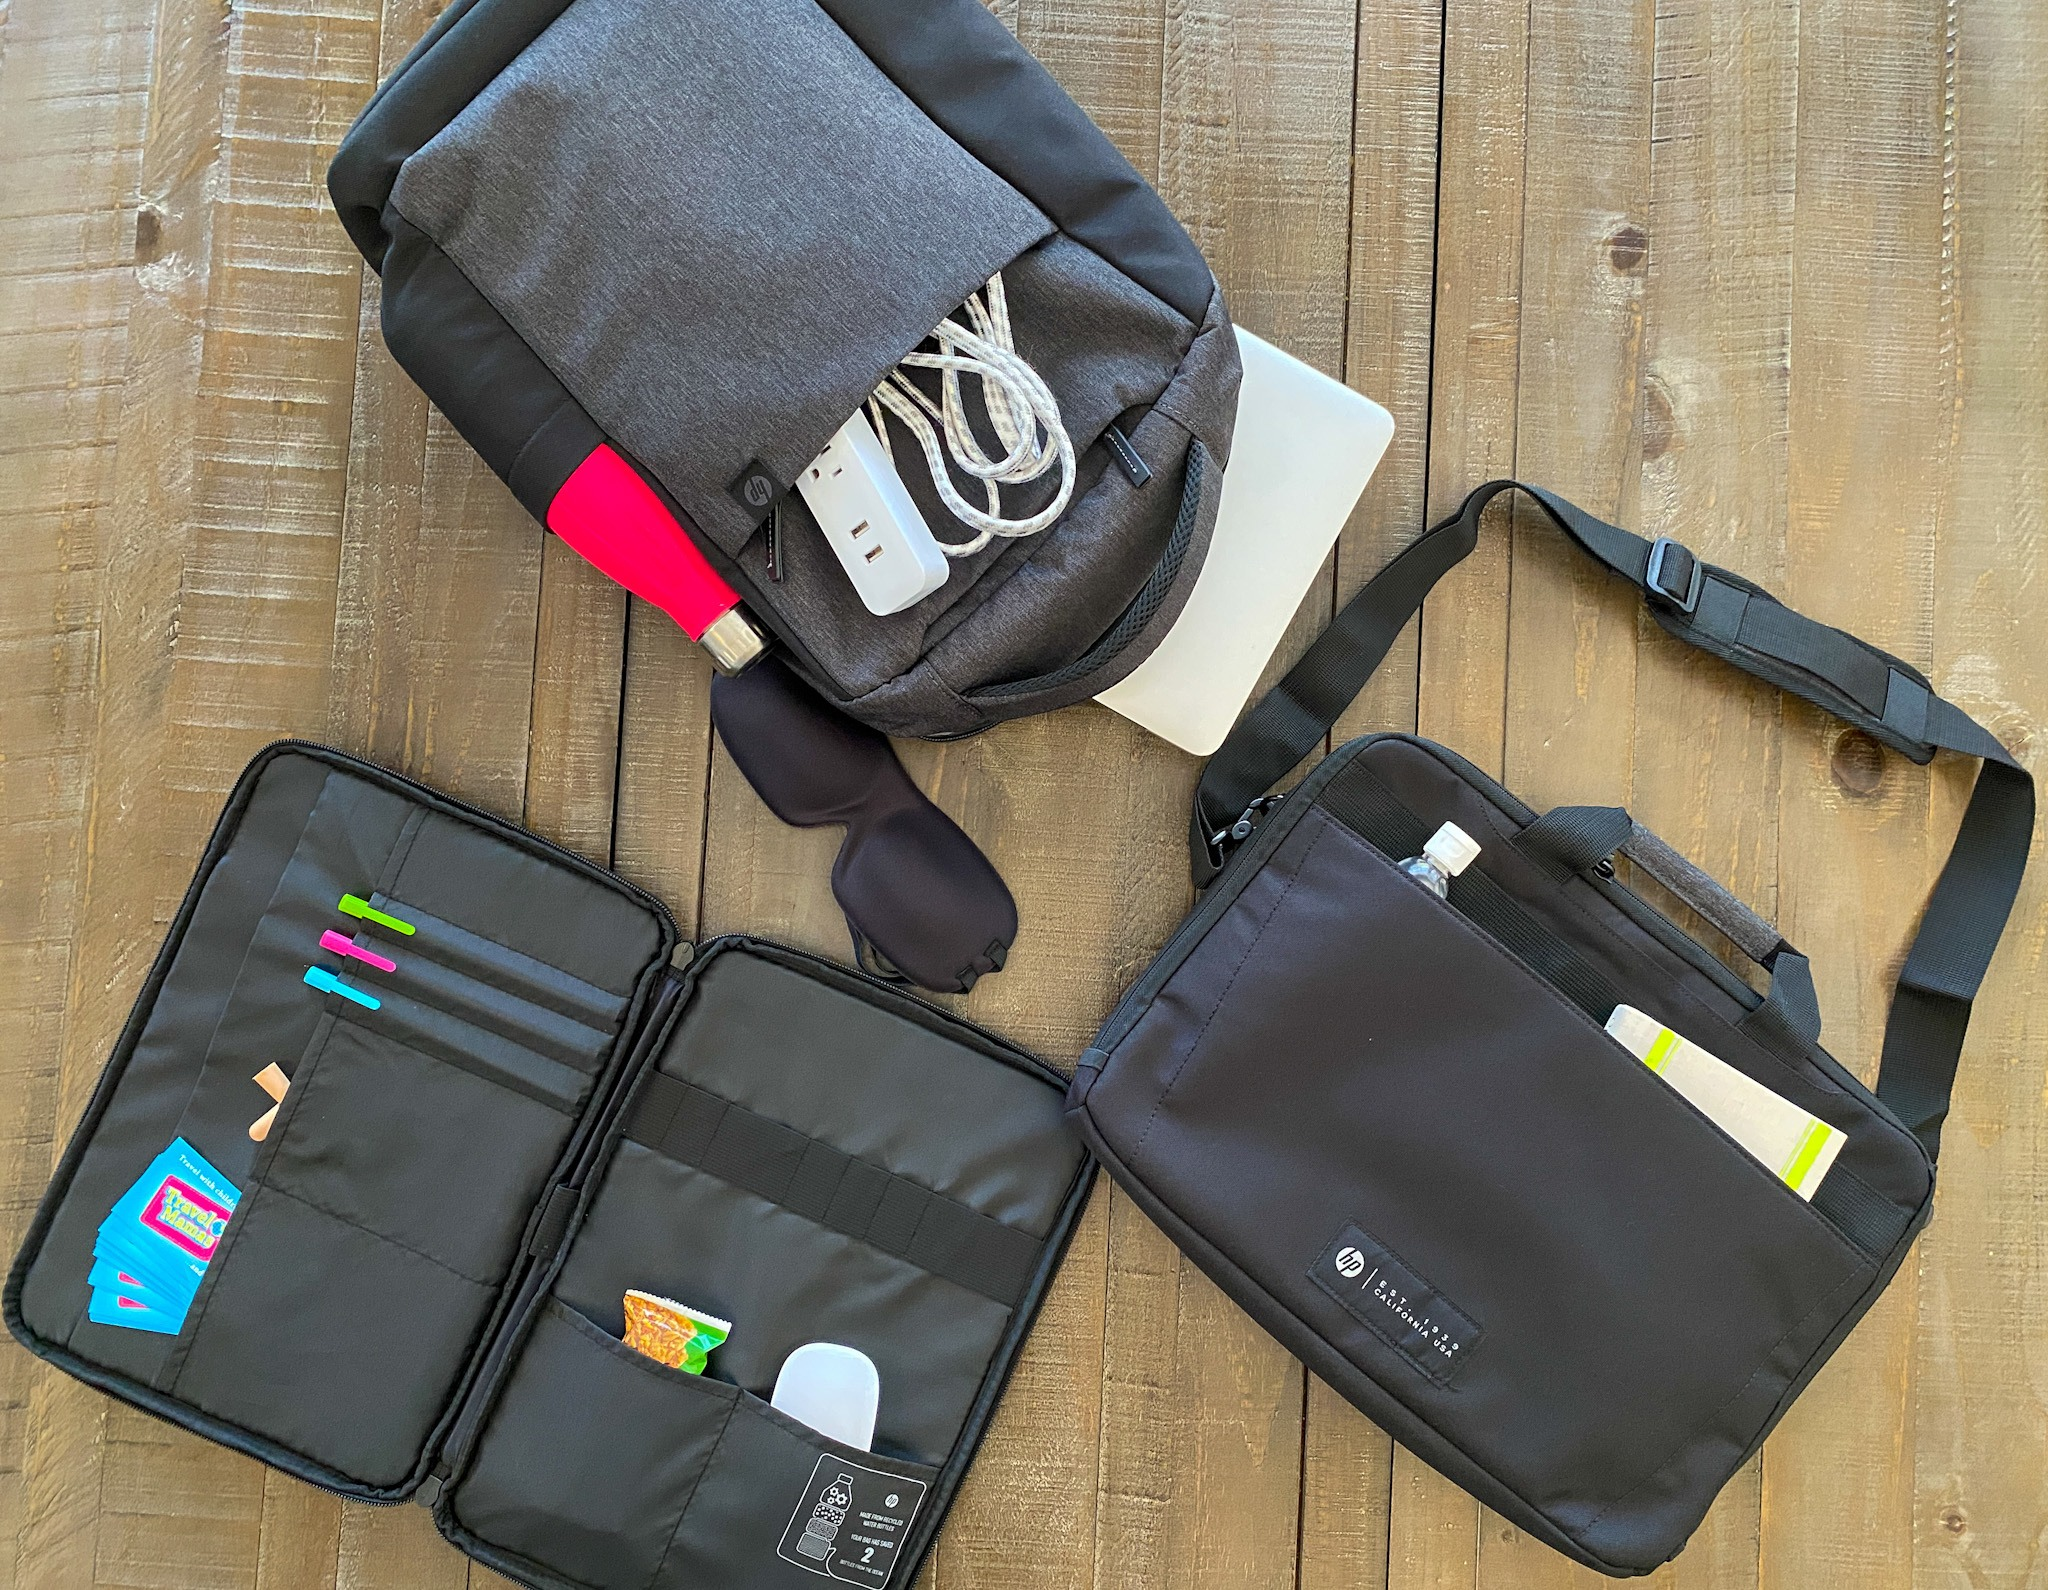 HP travel bags make business travel more comfortable and convenient